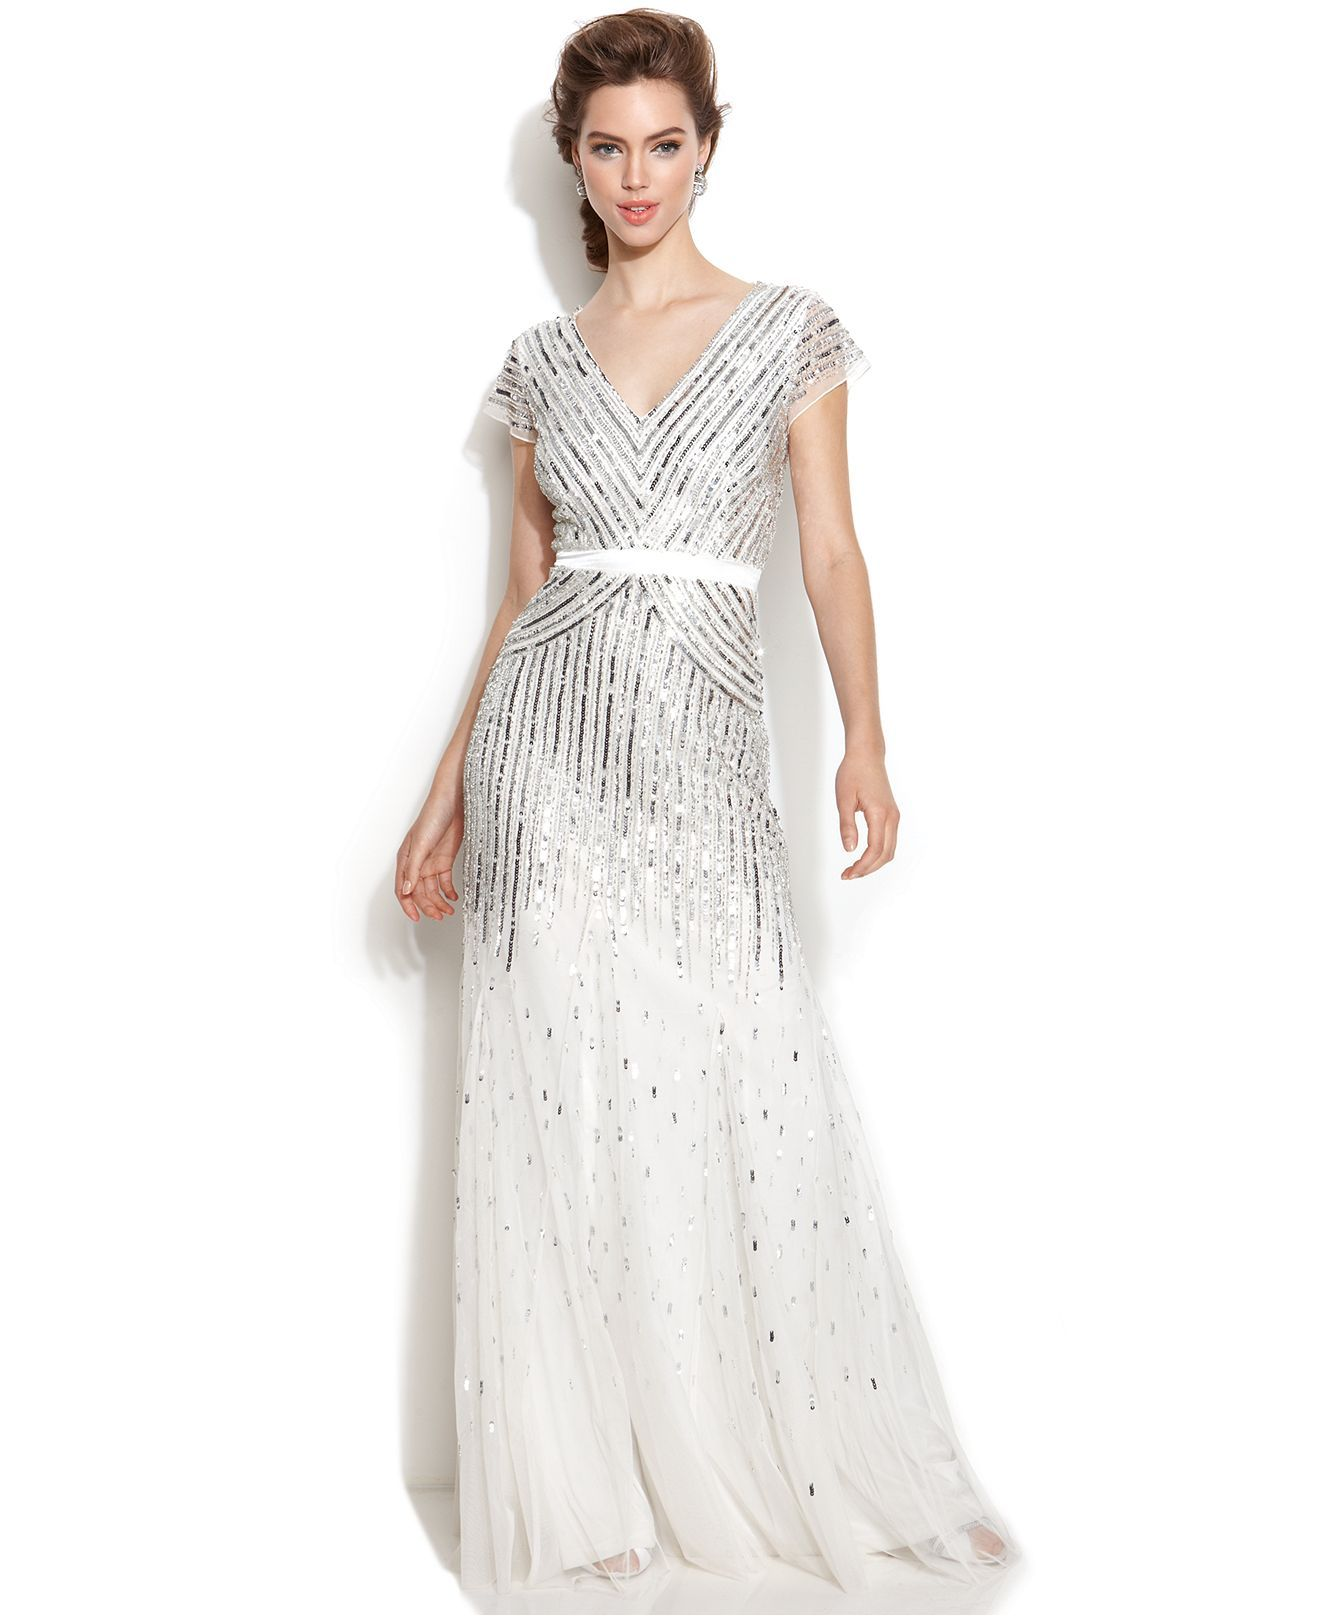 Papell cap sleeve beaded sequined gown dresses women macy s - Adrianna Papell Cap Sleeve Sequined Gown Wedding Dresses Women Macy S